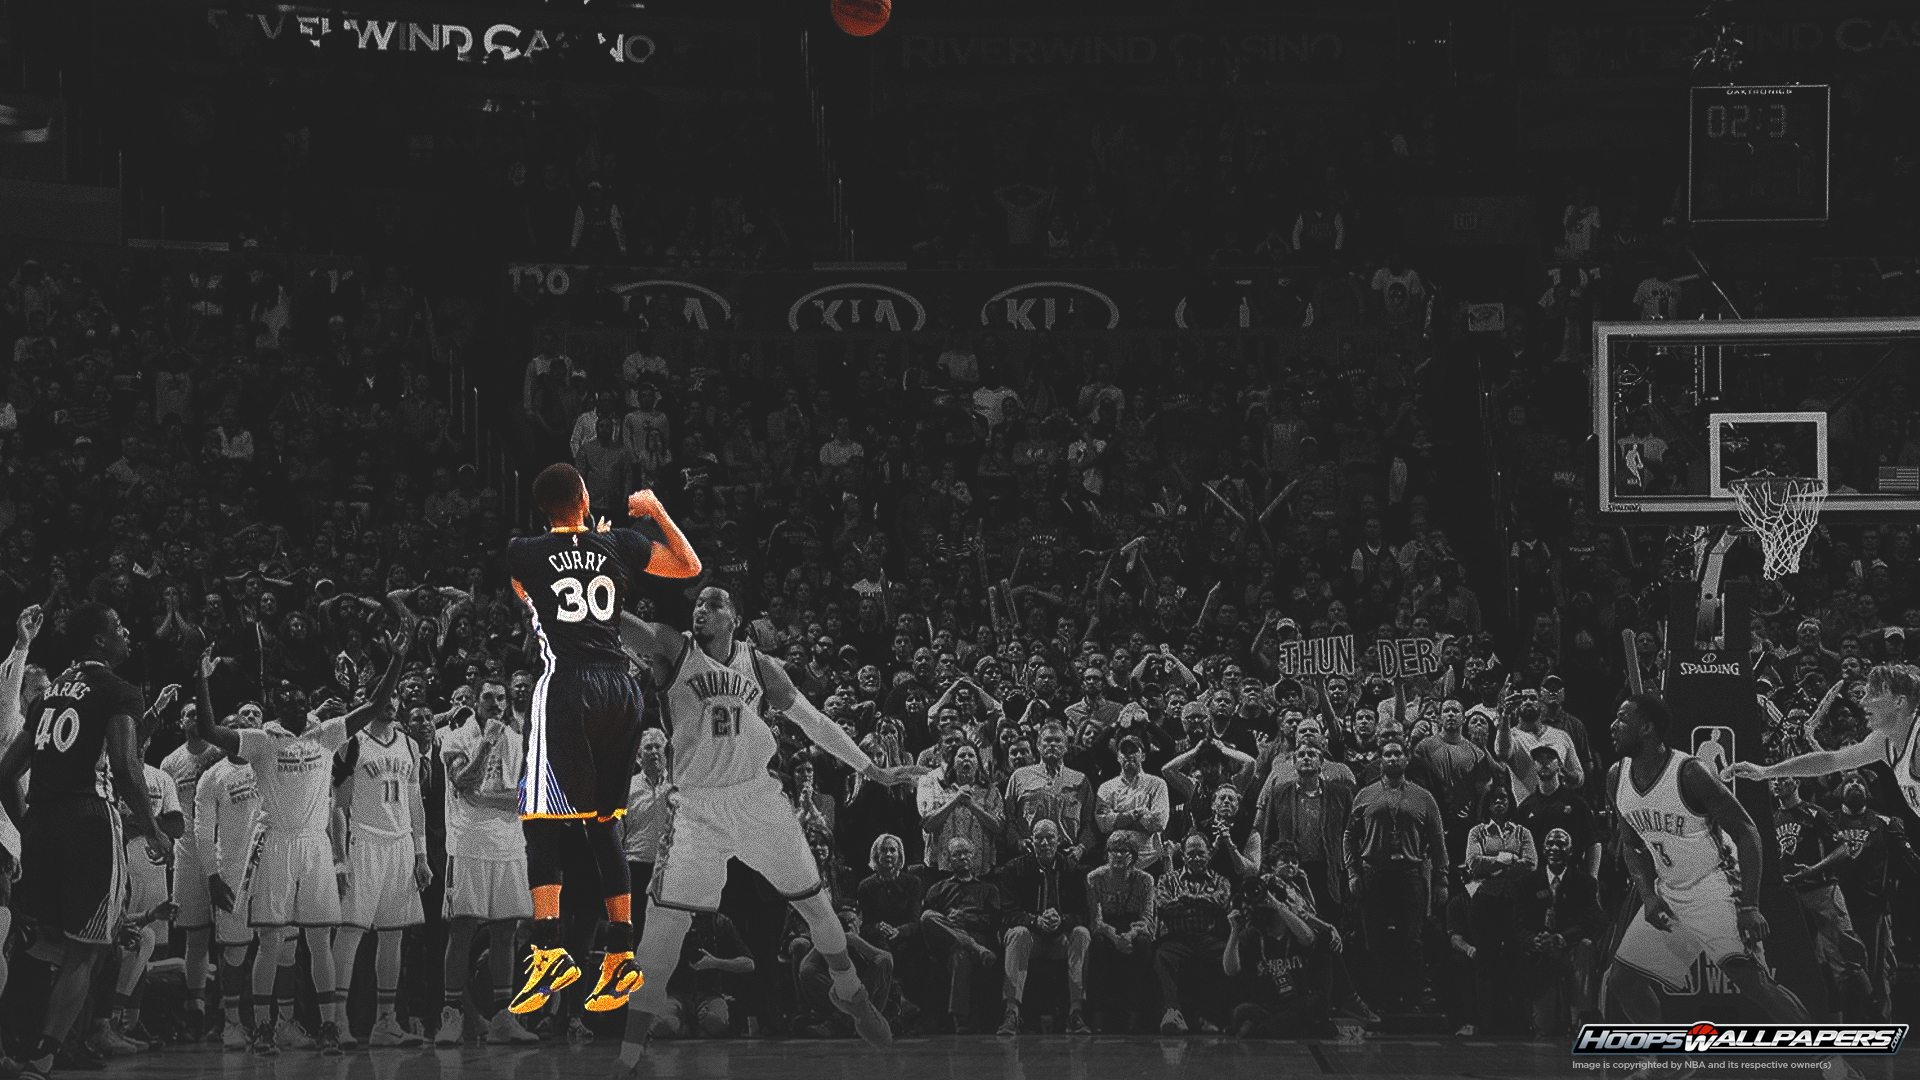 Hd wallpaper nba - Steph Curry Wallpaper